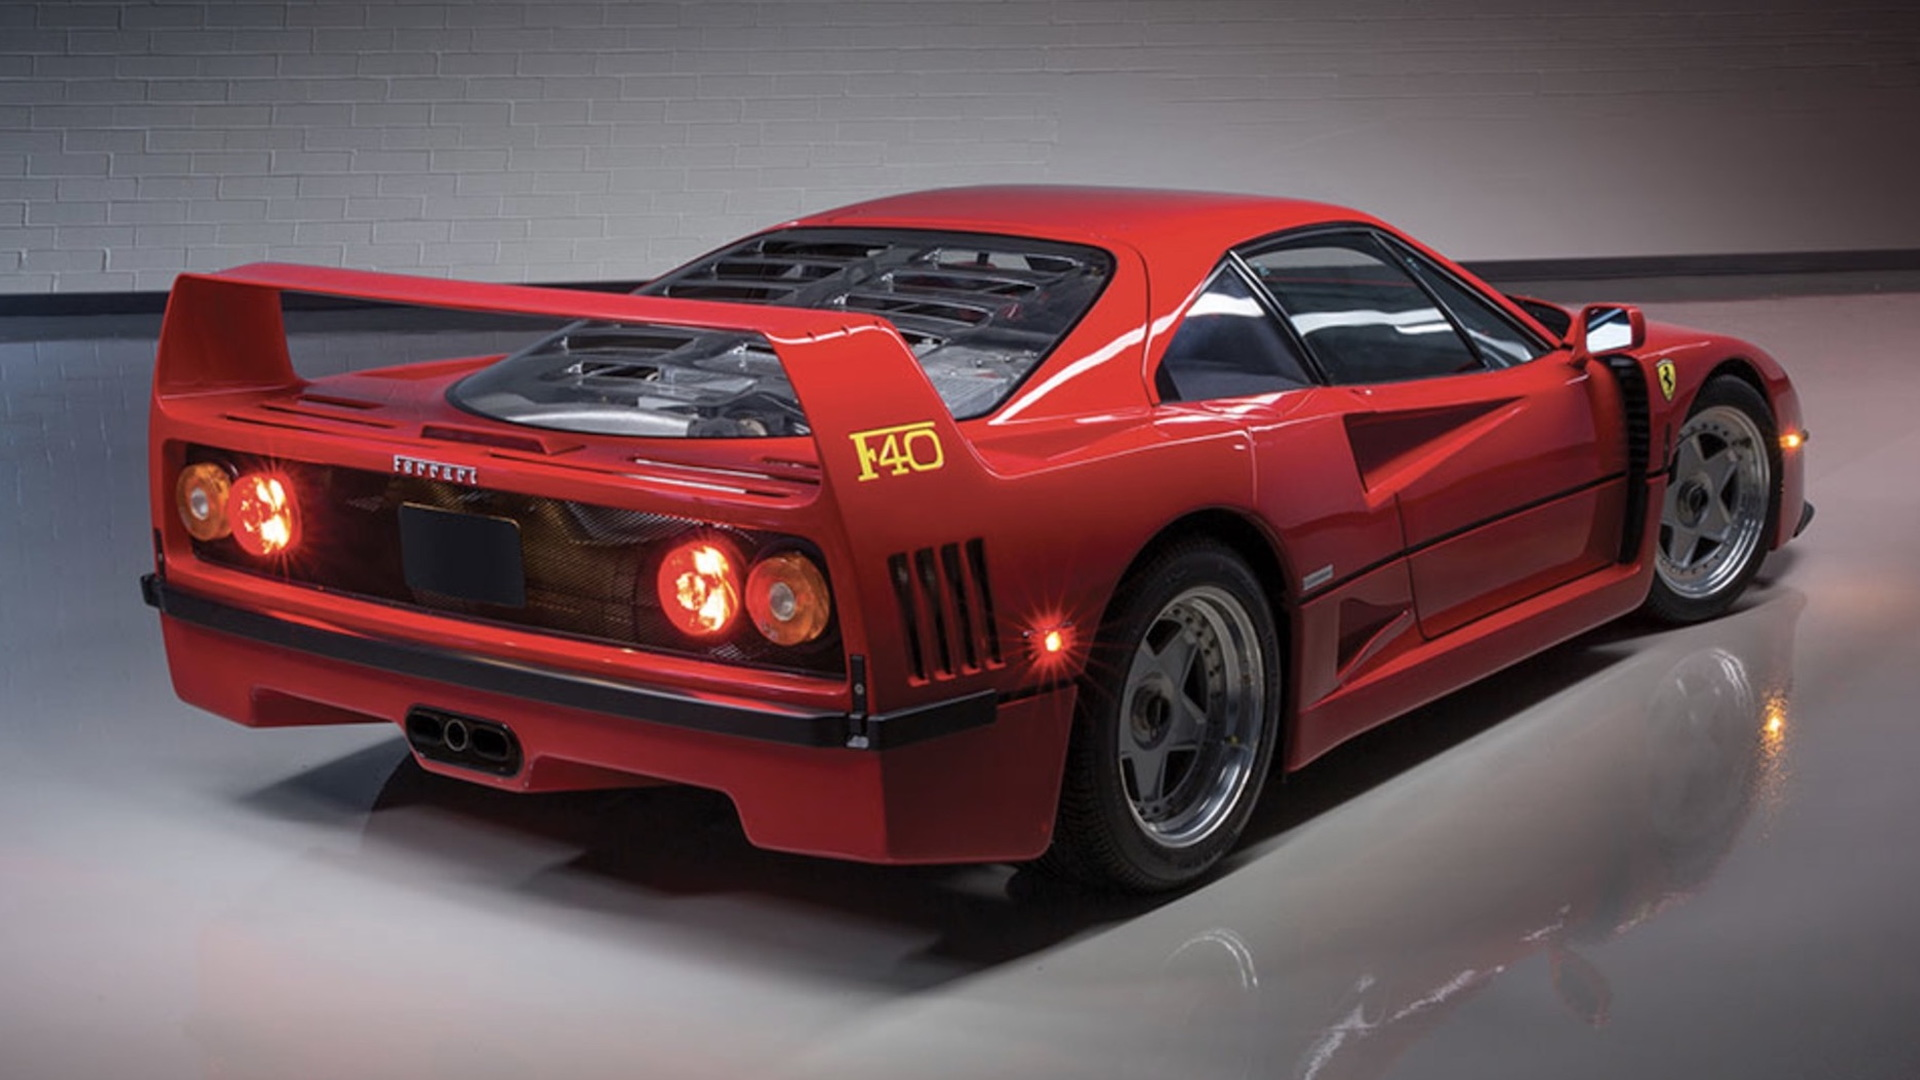 1991 Ferrari F40 for sale by RM Sotheby's